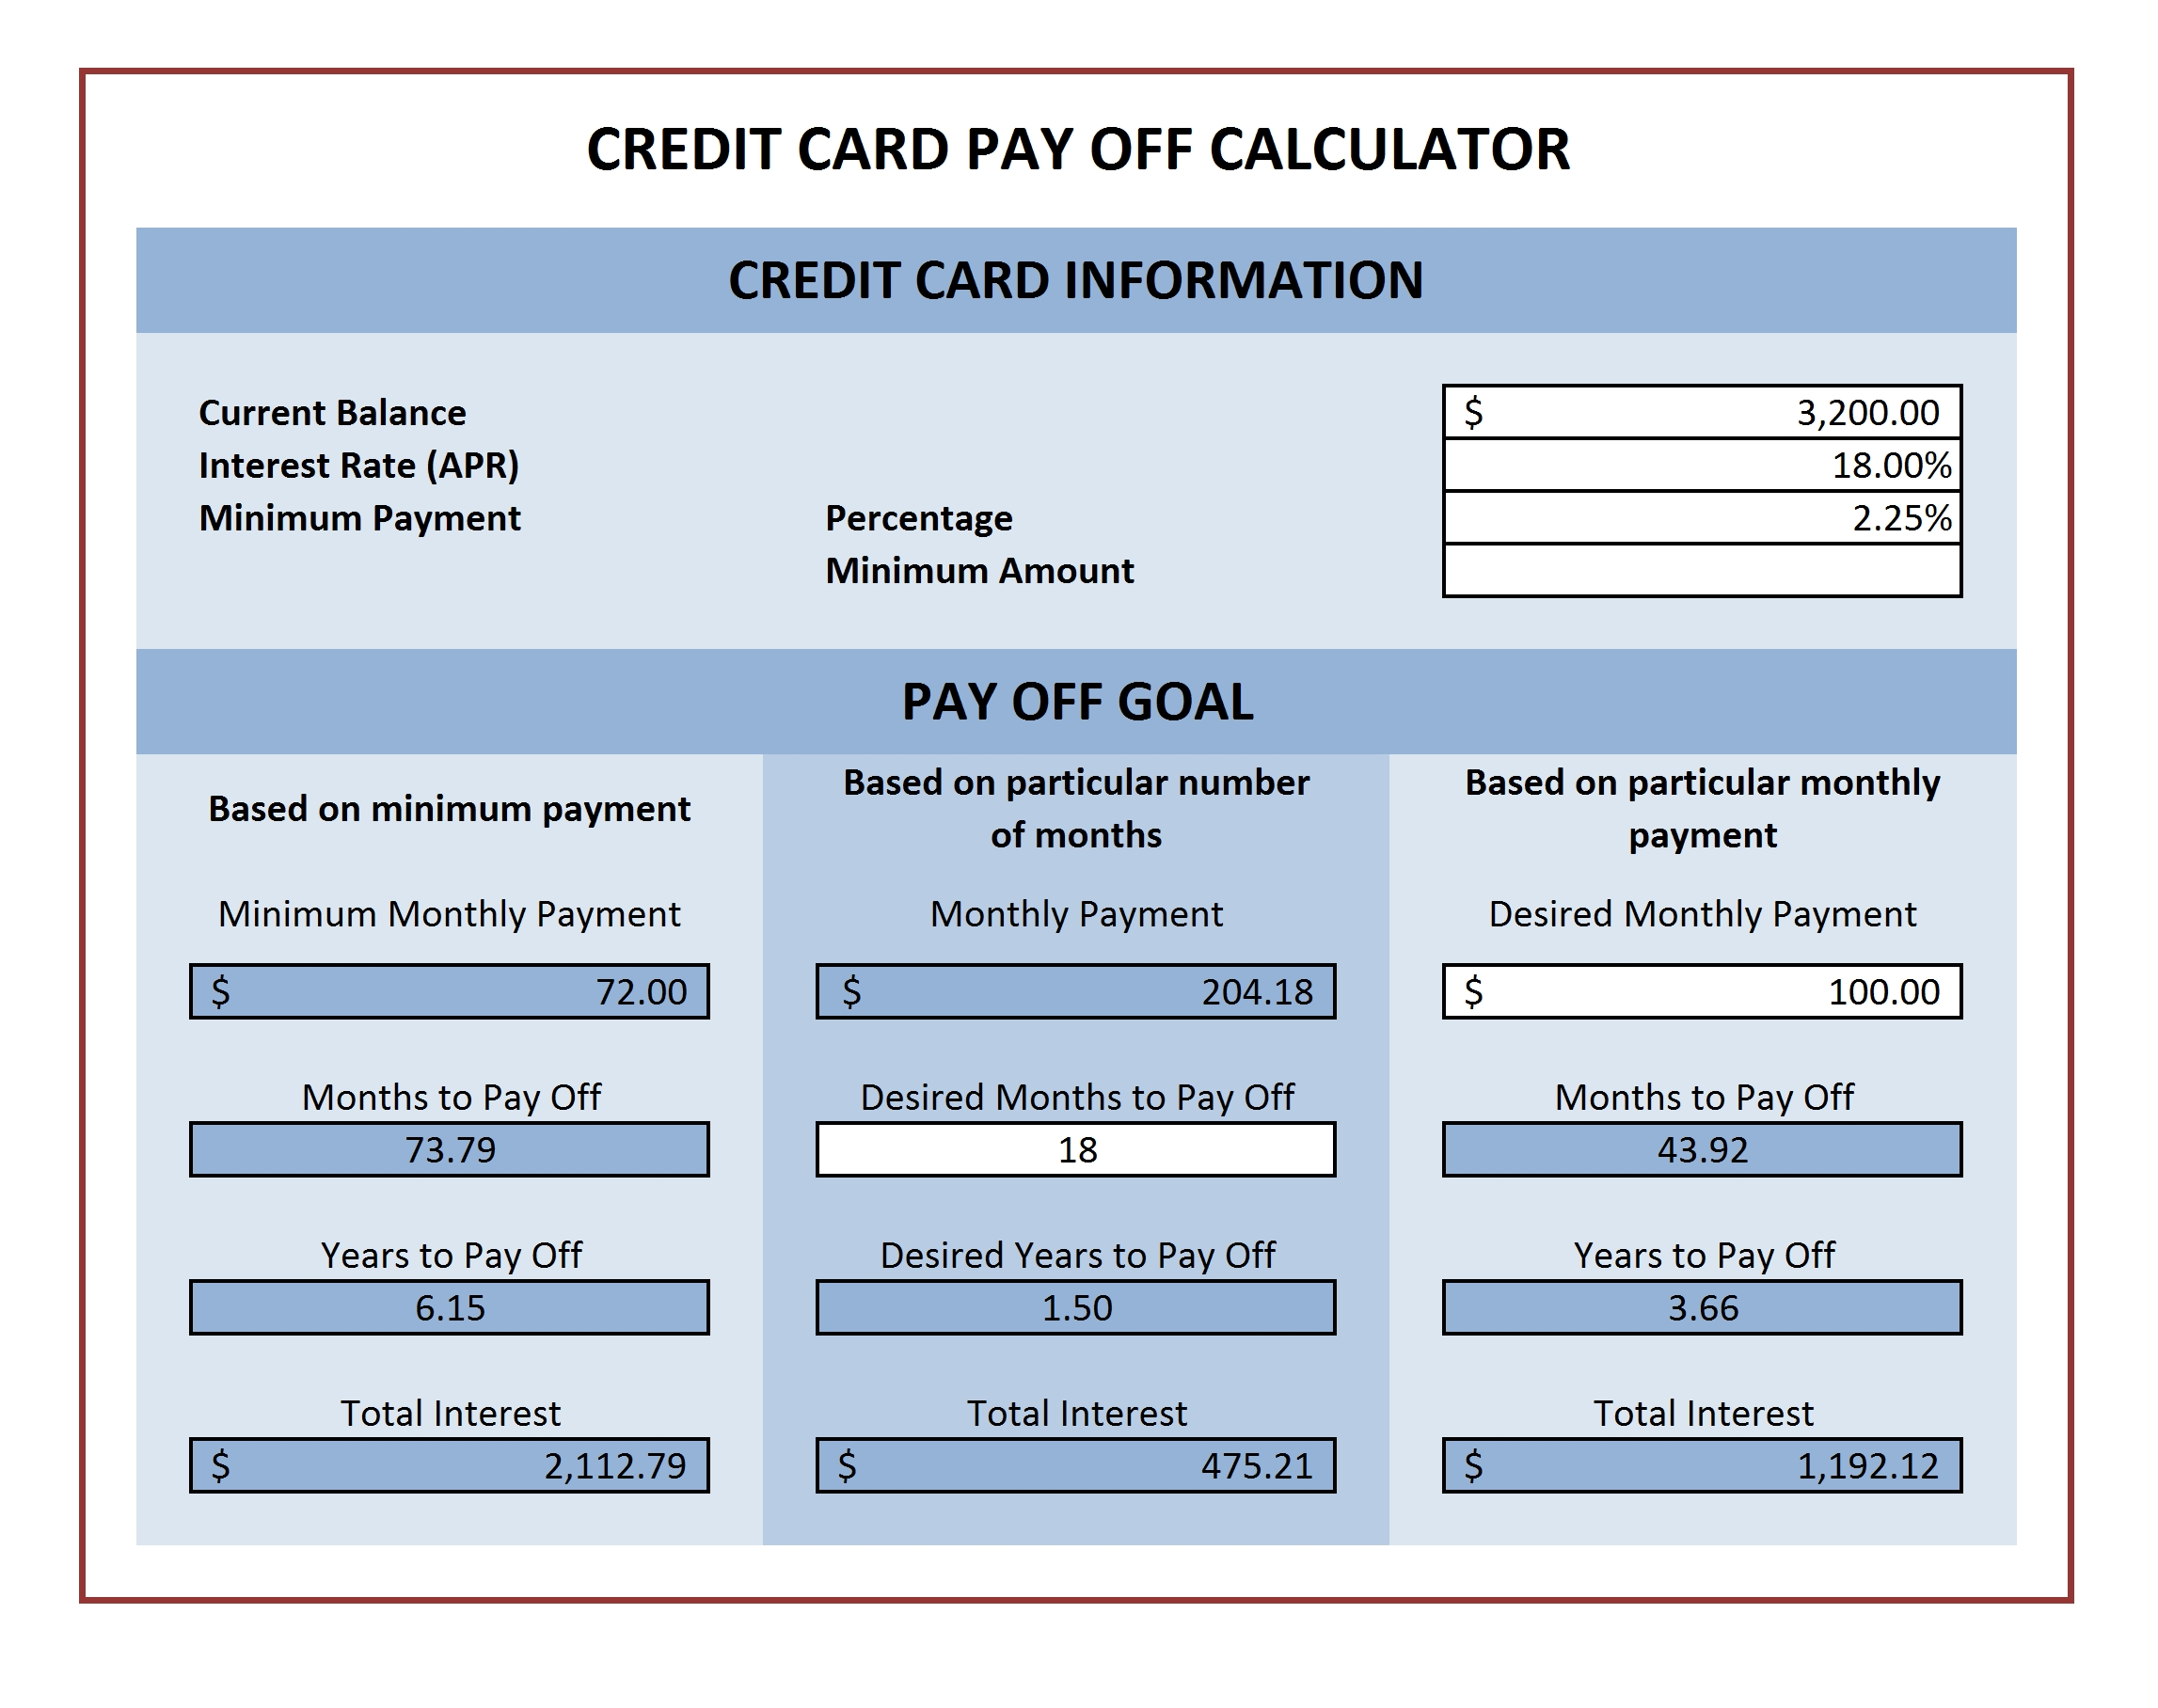 Loan payoff calculator picture freeuse download Credit Card Payoff Calculator | Excel Templates picture freeuse download